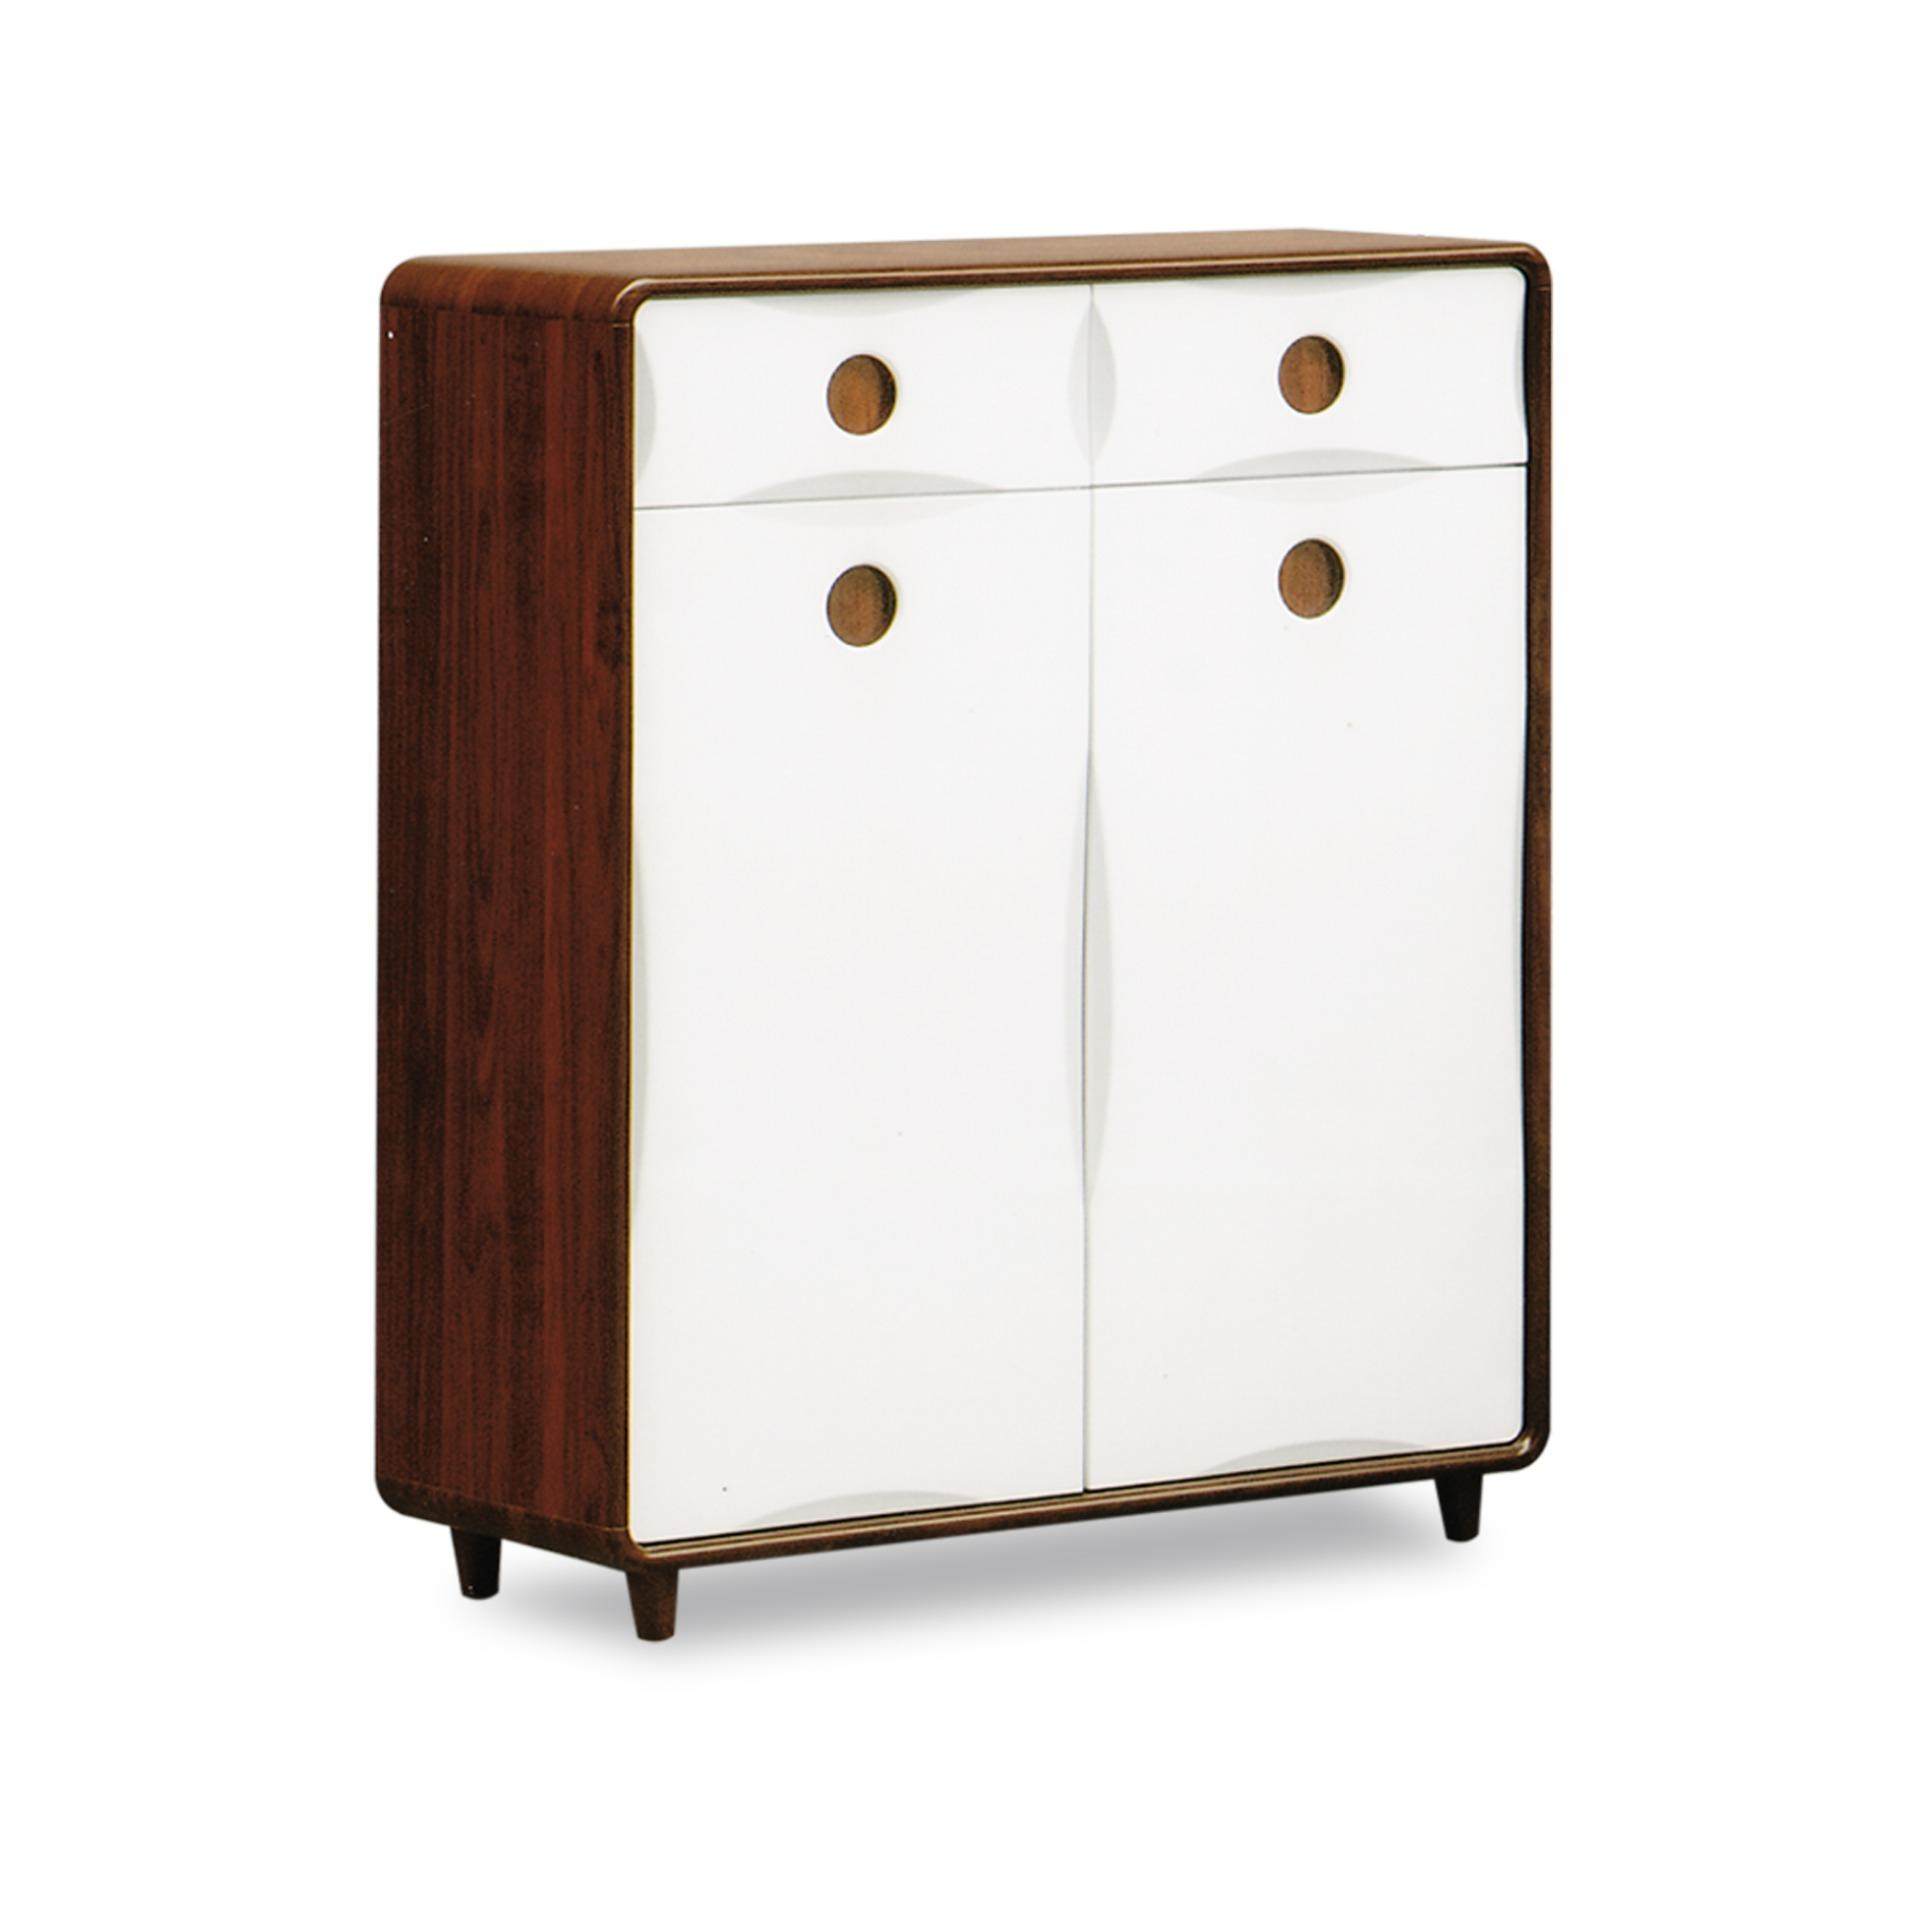 Robin 2 Doors Shoe Cabinet (FREE DELIVERY)(FREE ASSEMBLY)